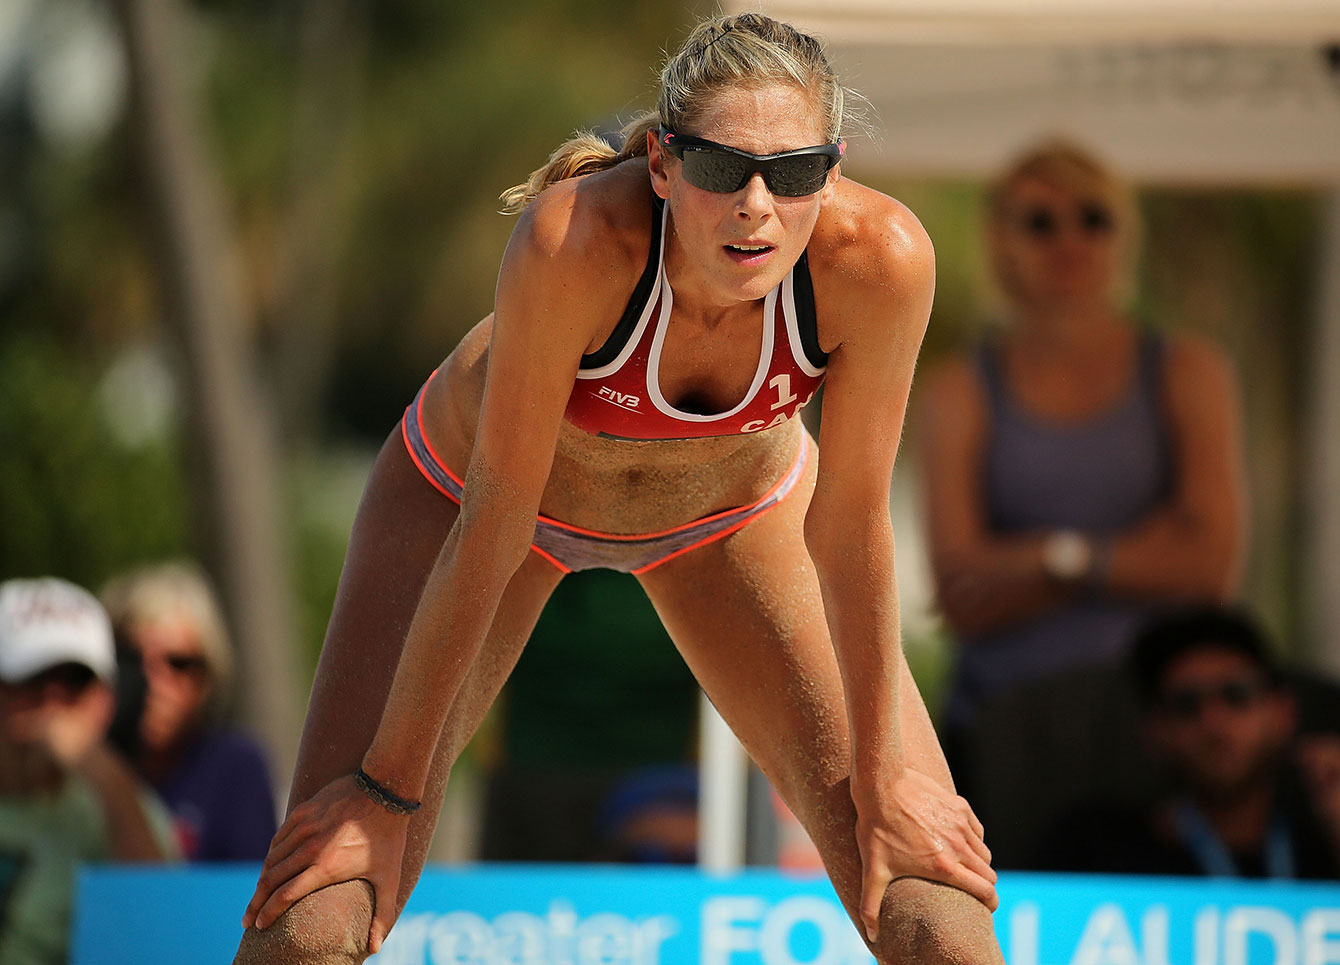 Sarah Pavan became an accomplished indoor player with the national program and the University of Nebraska where she won an NCAA Championship in 2006.